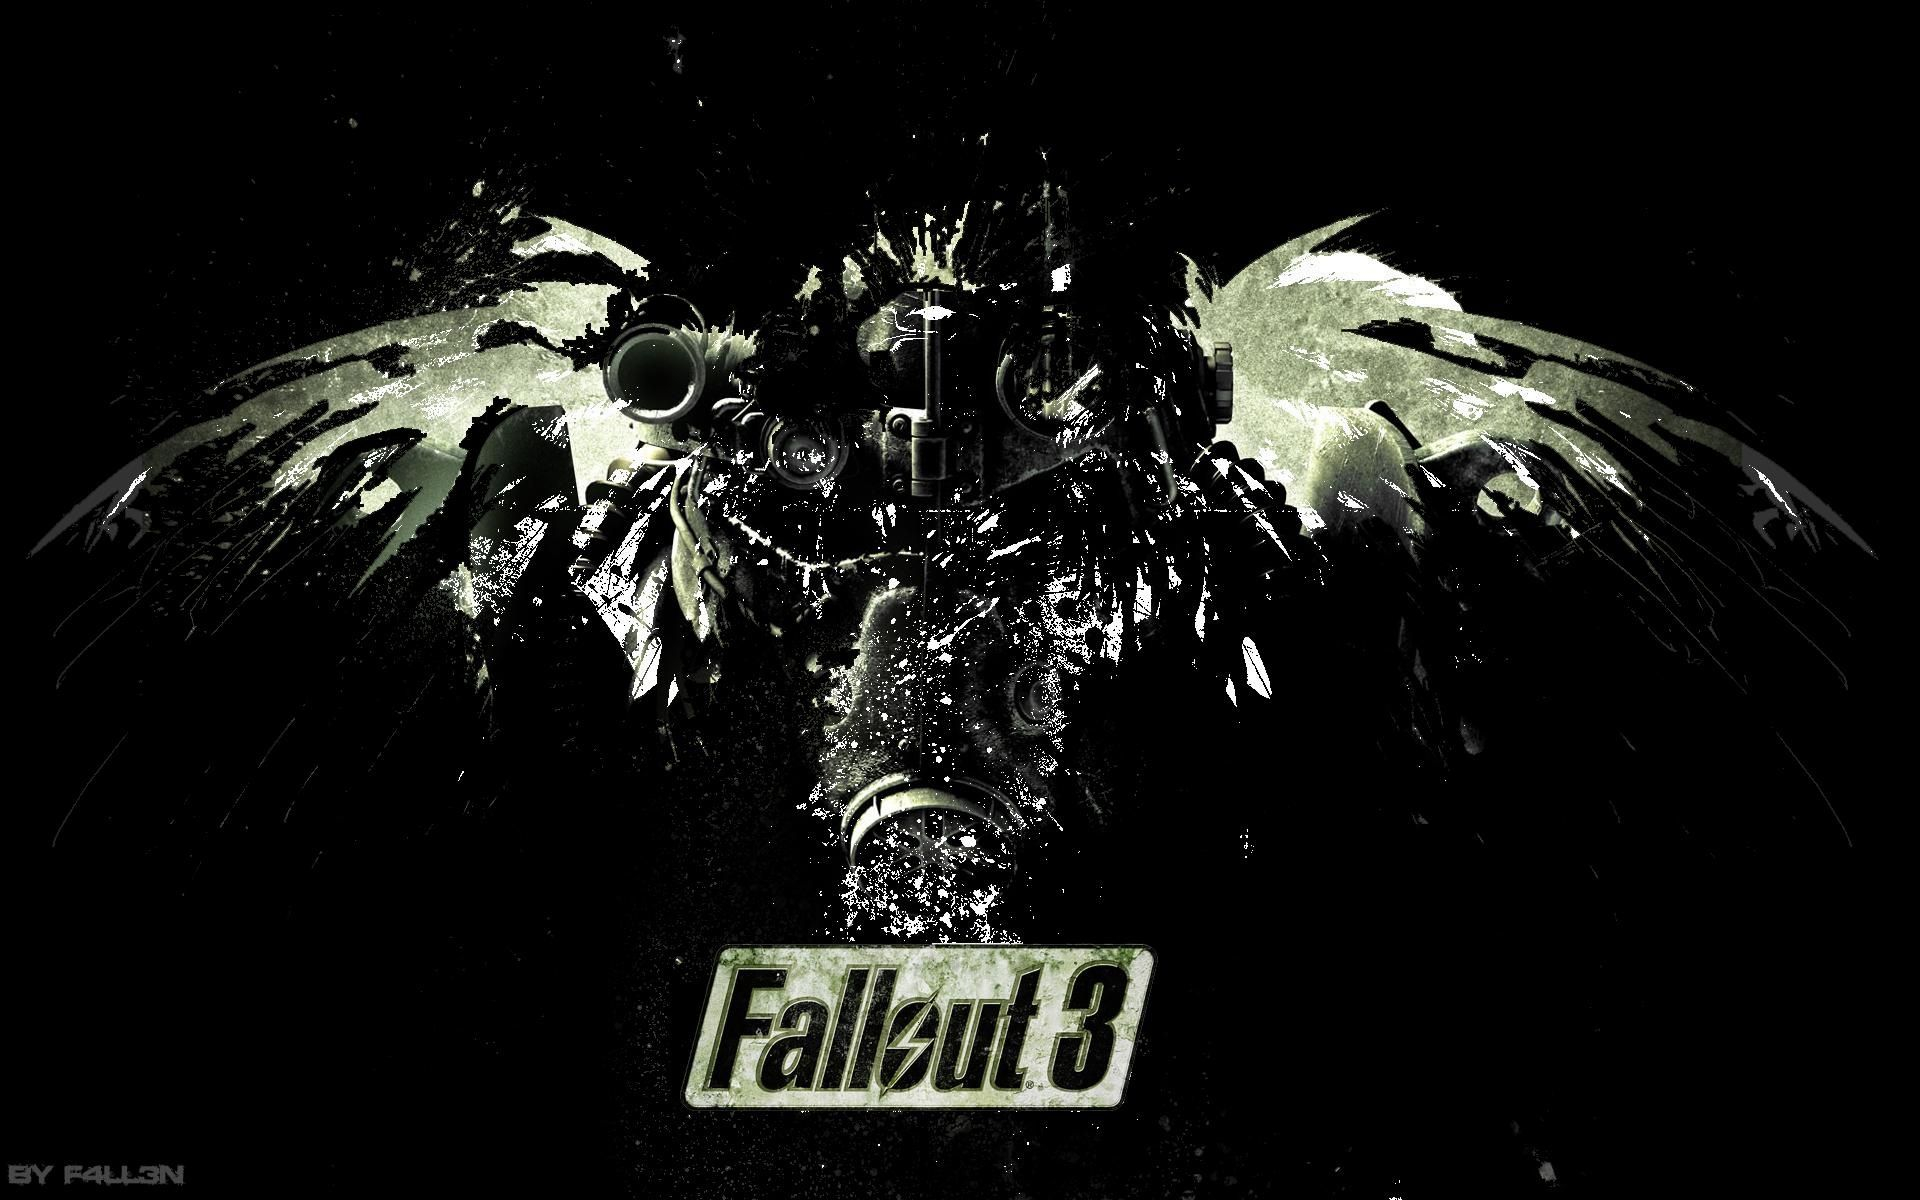 Fallout computer wallpapers desktop backgrounds x id hd fallout hd wallpapers backgrounds wallpaper page thecheapjerseys Gallery